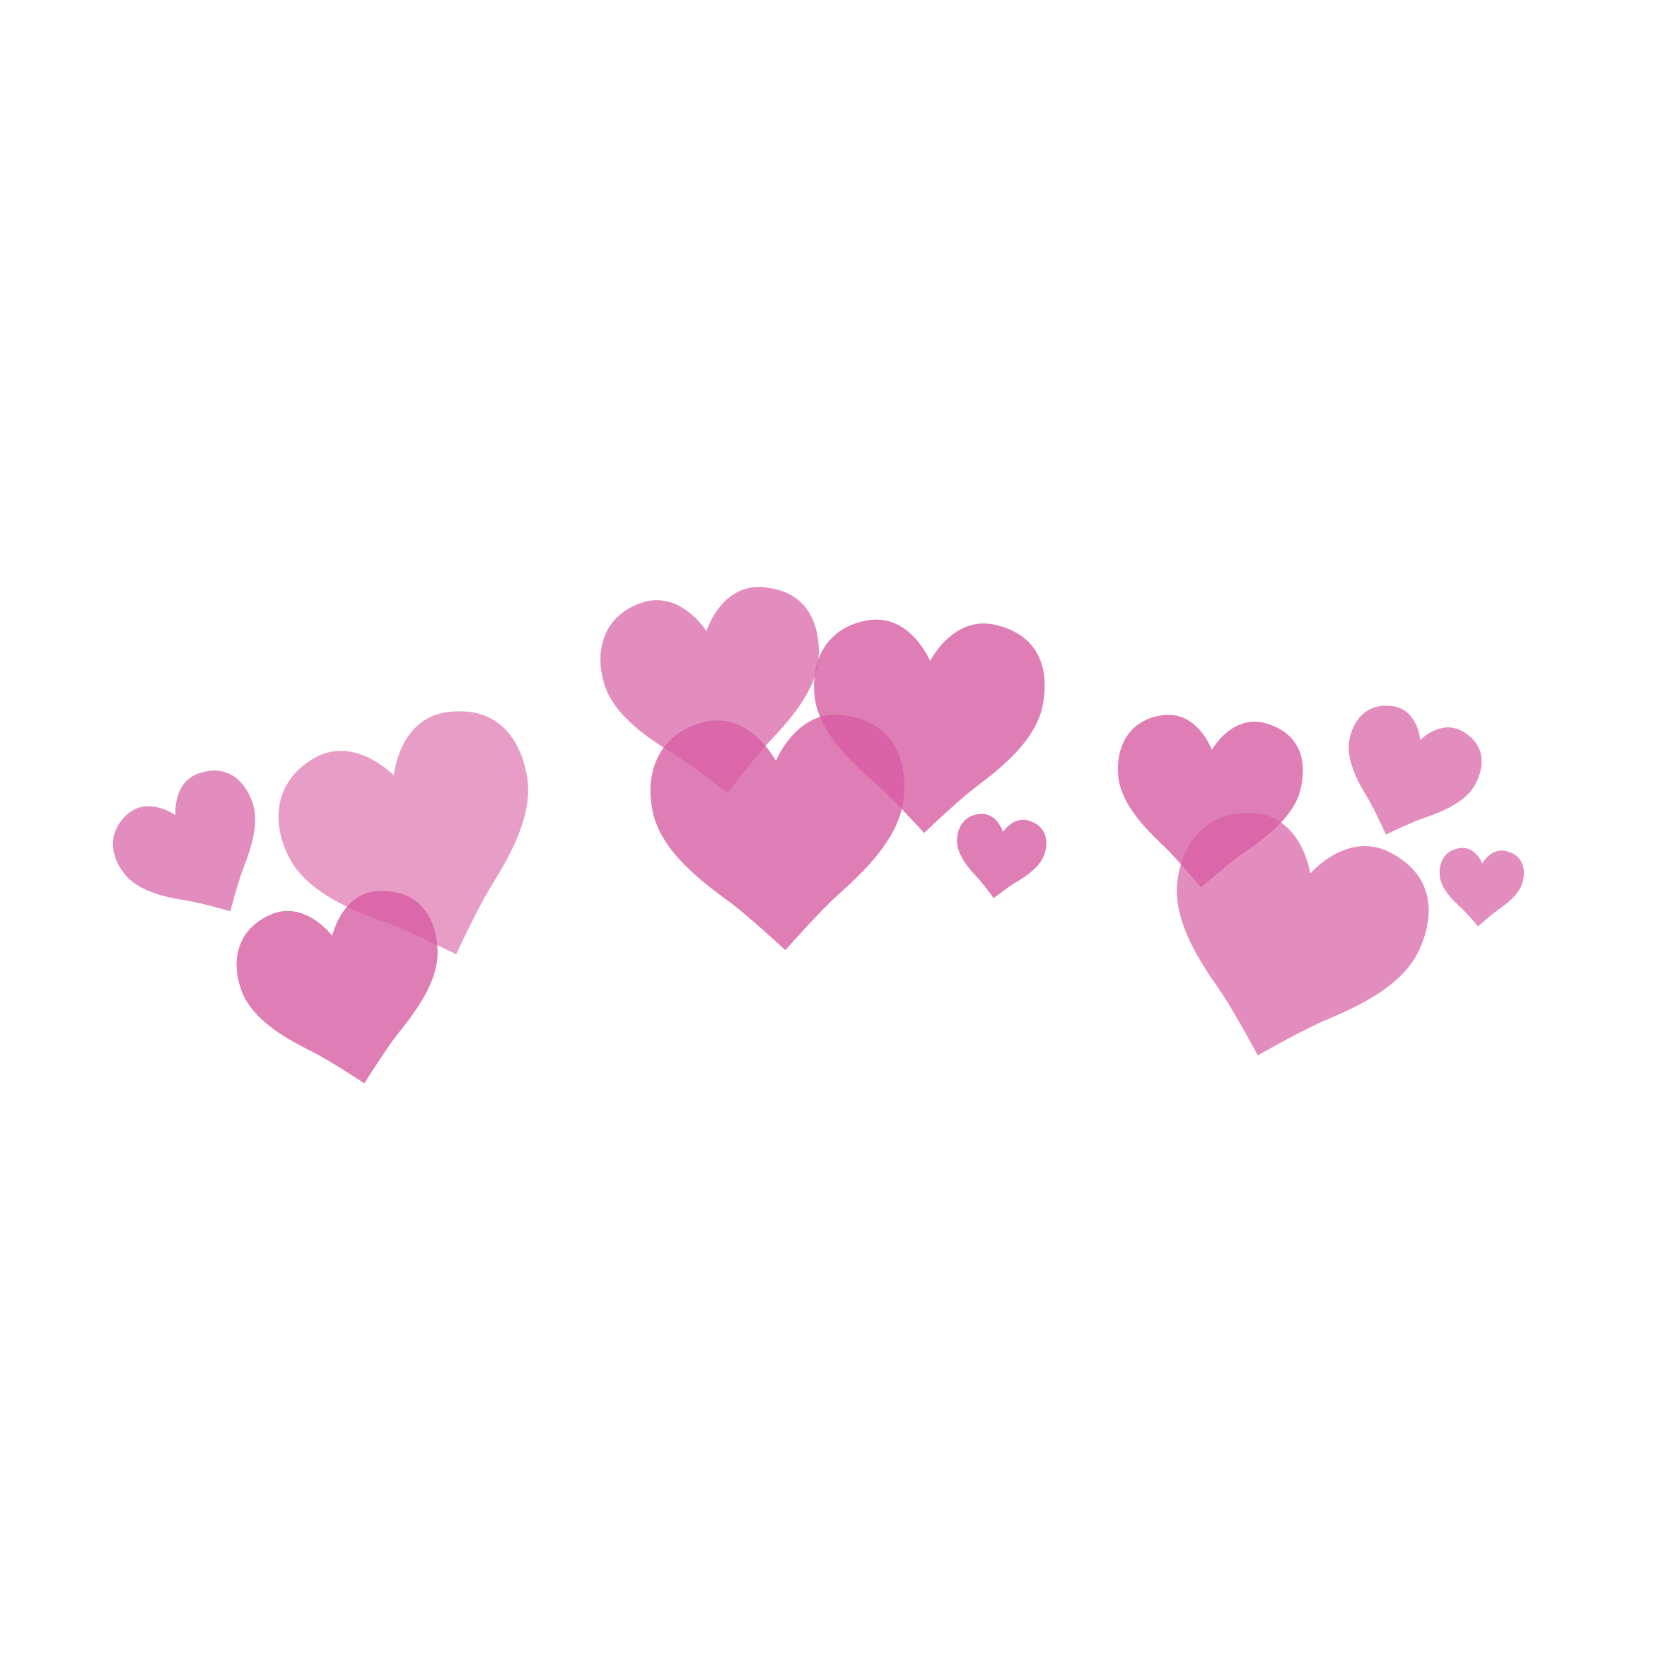 Freetoedit Heart Hearts Crown Tumblr Awesome Remixit Crown Aesthetic Cute Tumblr Pictures Free Clip Art